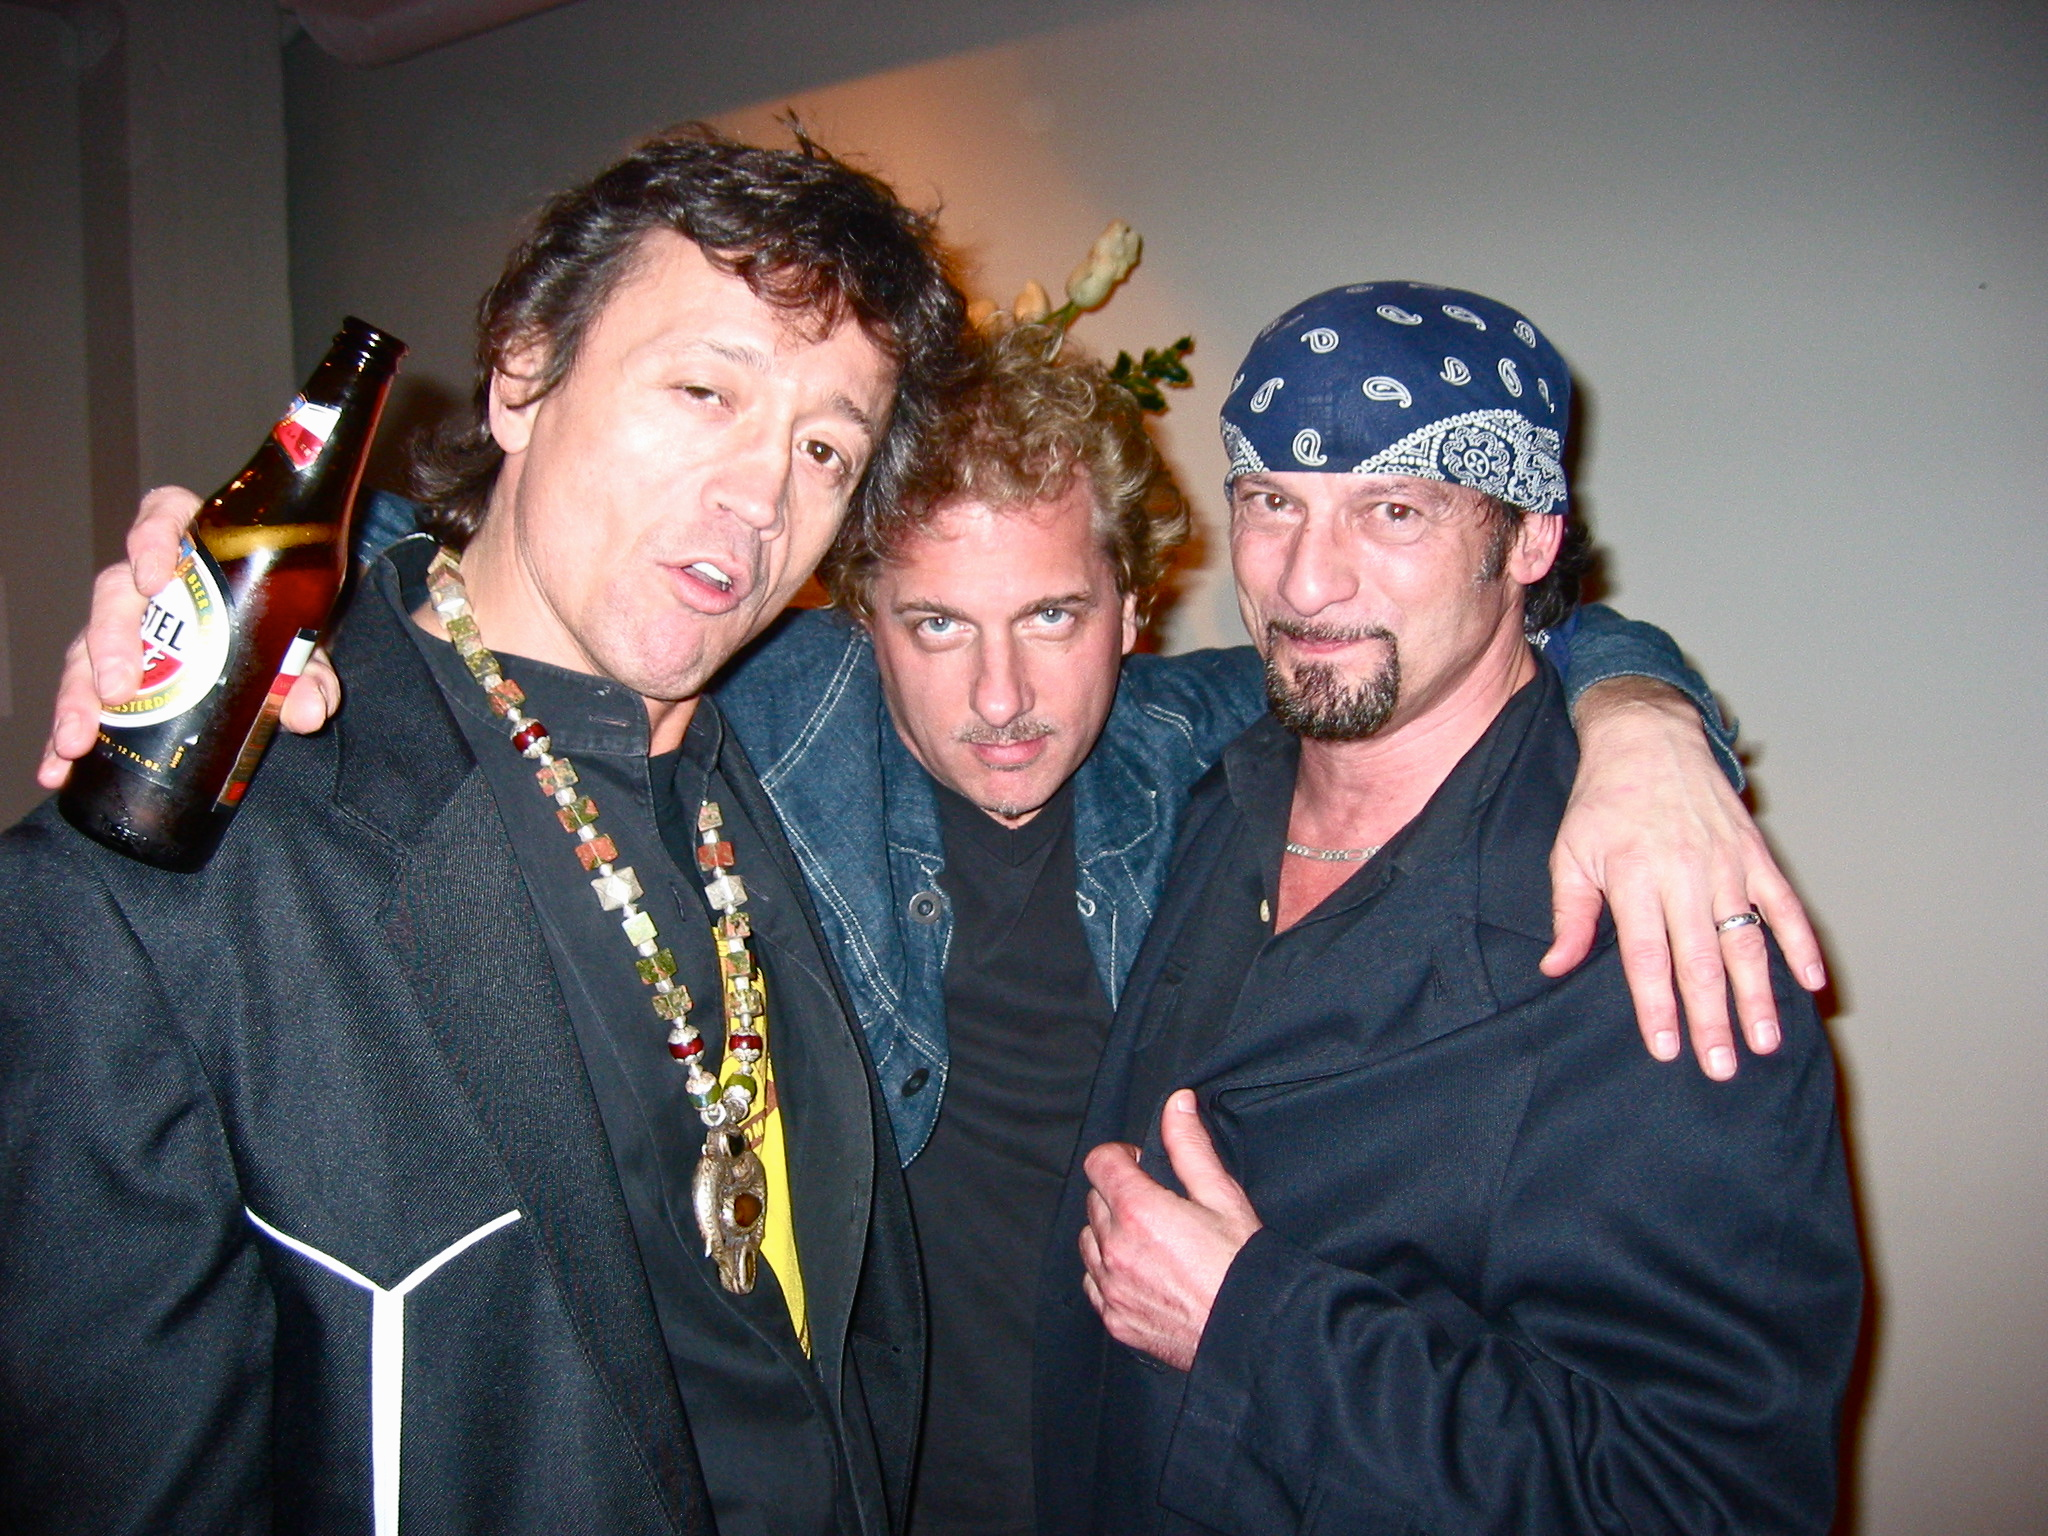 Mark Collie, David Z & Me